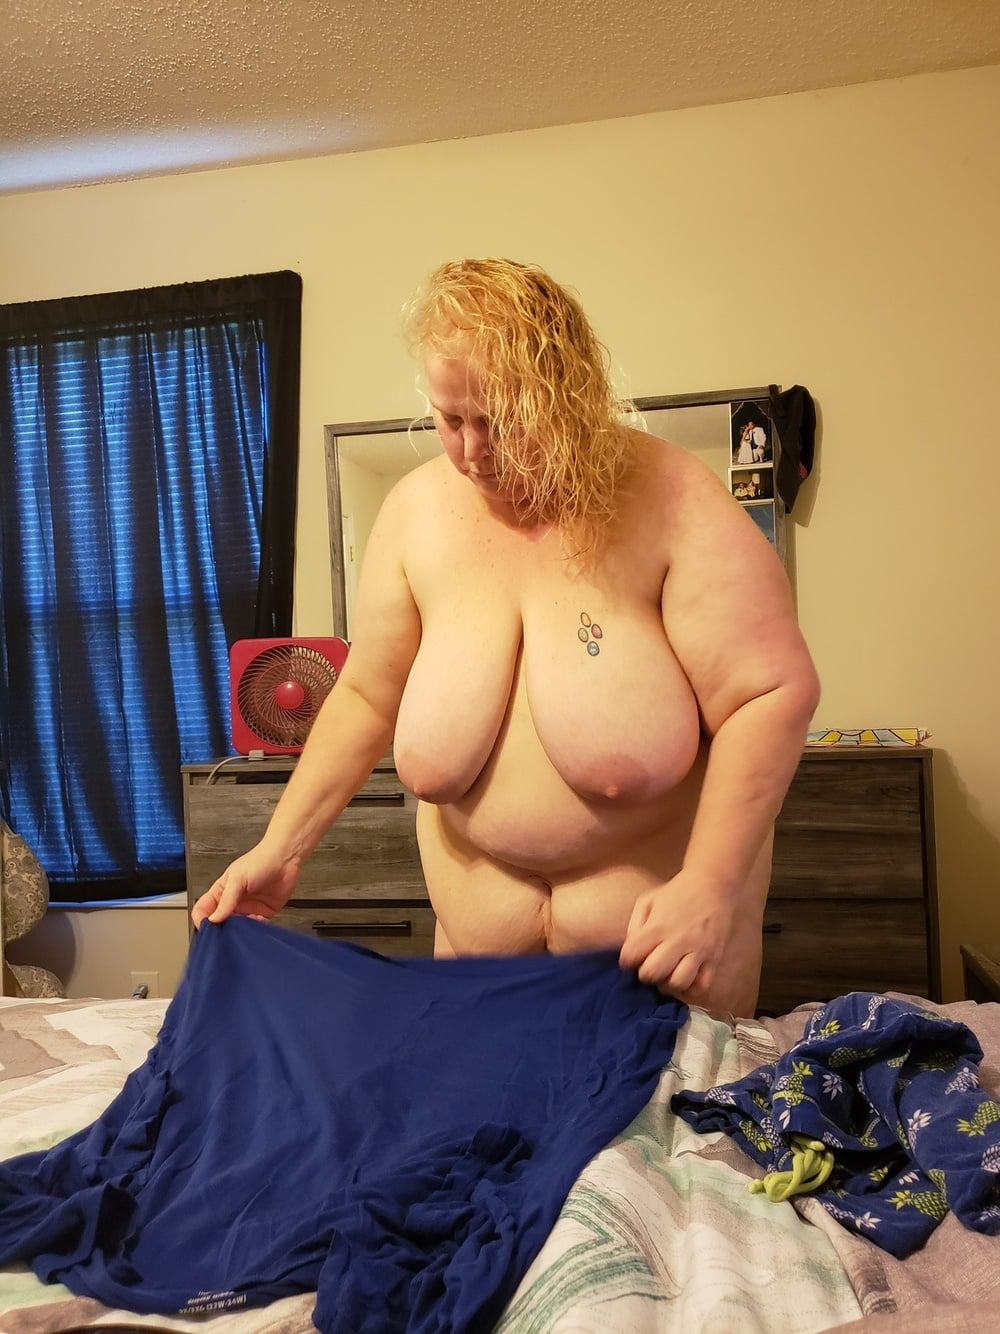 Chef fucks morbidly obese woman - 2 part 9